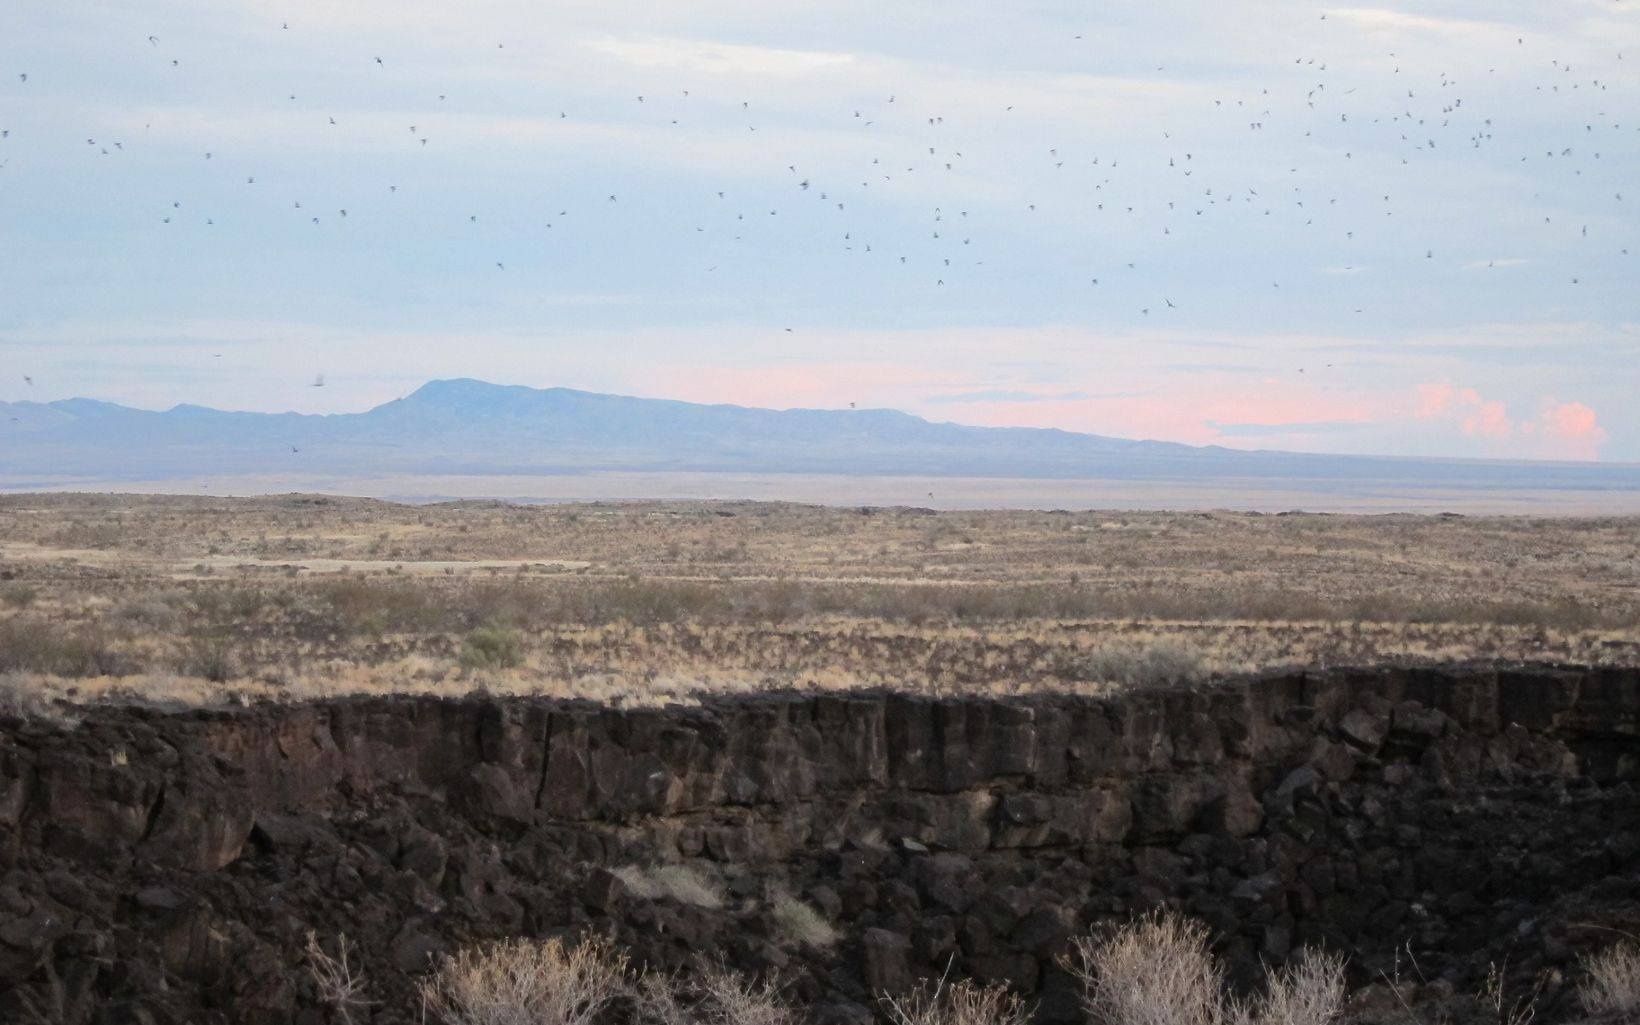 The sun sets over the Armendaris Ranch and its protected bat population.